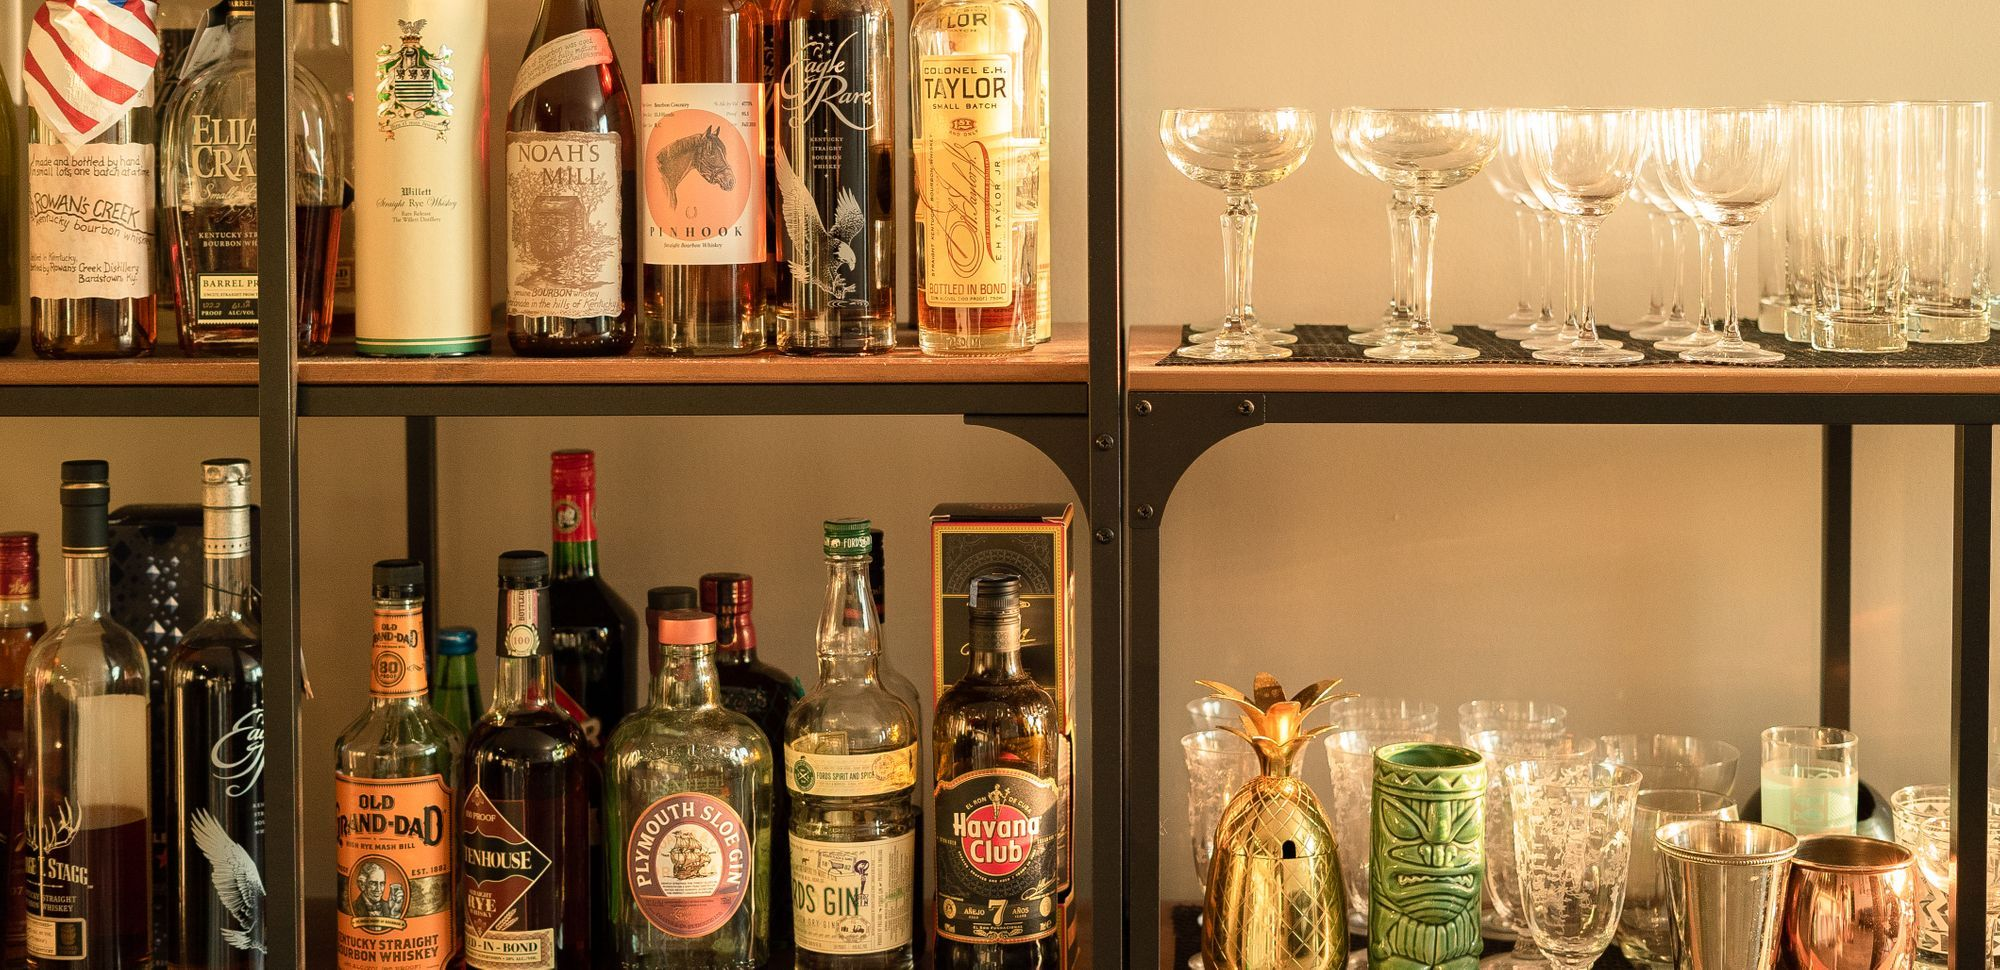 home bar setup with many bottles, assorted glassware in an afternoon warm glow.